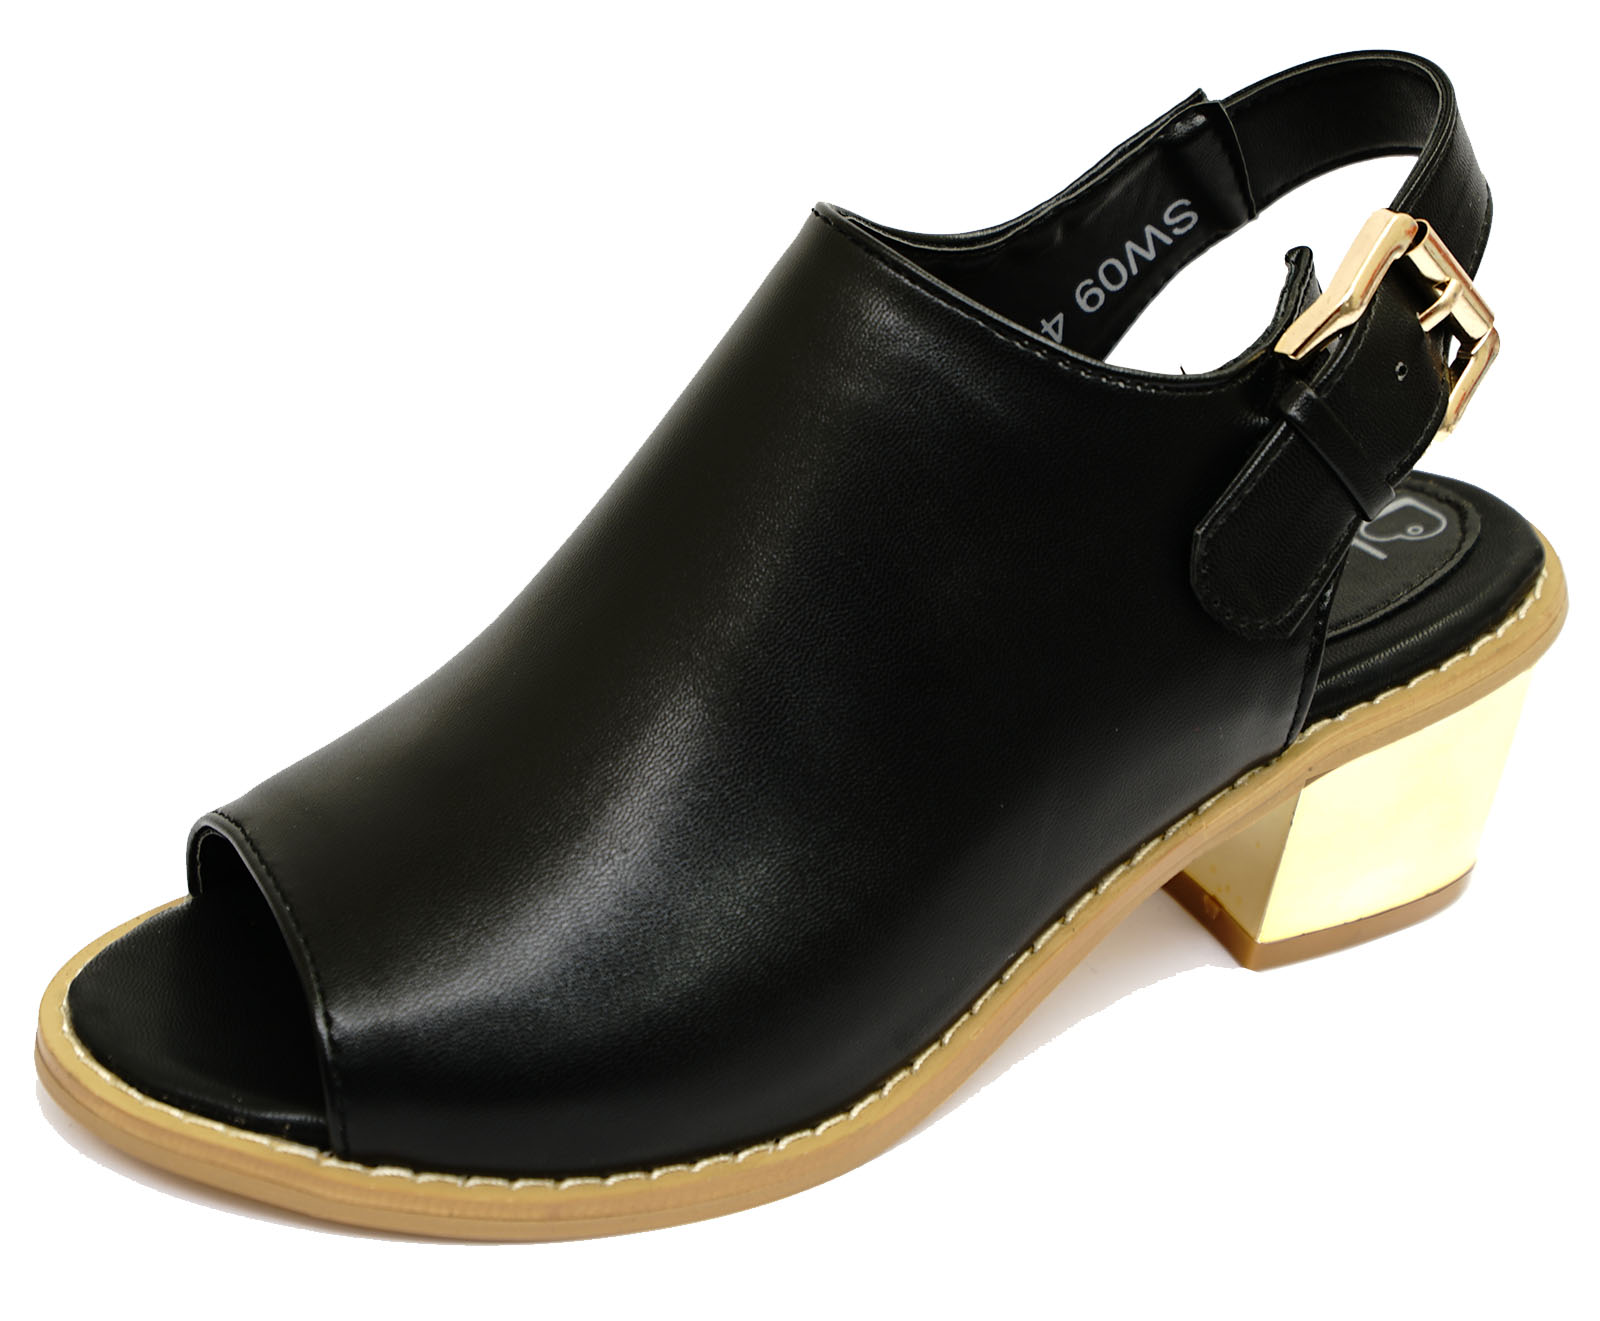 f04d41fe58c Sentinel LADIES BLACK SLIP-ON BLOCK-HEEL PEEP-TOE SLINGBACK MULES SUMMER  SHOES SIZES